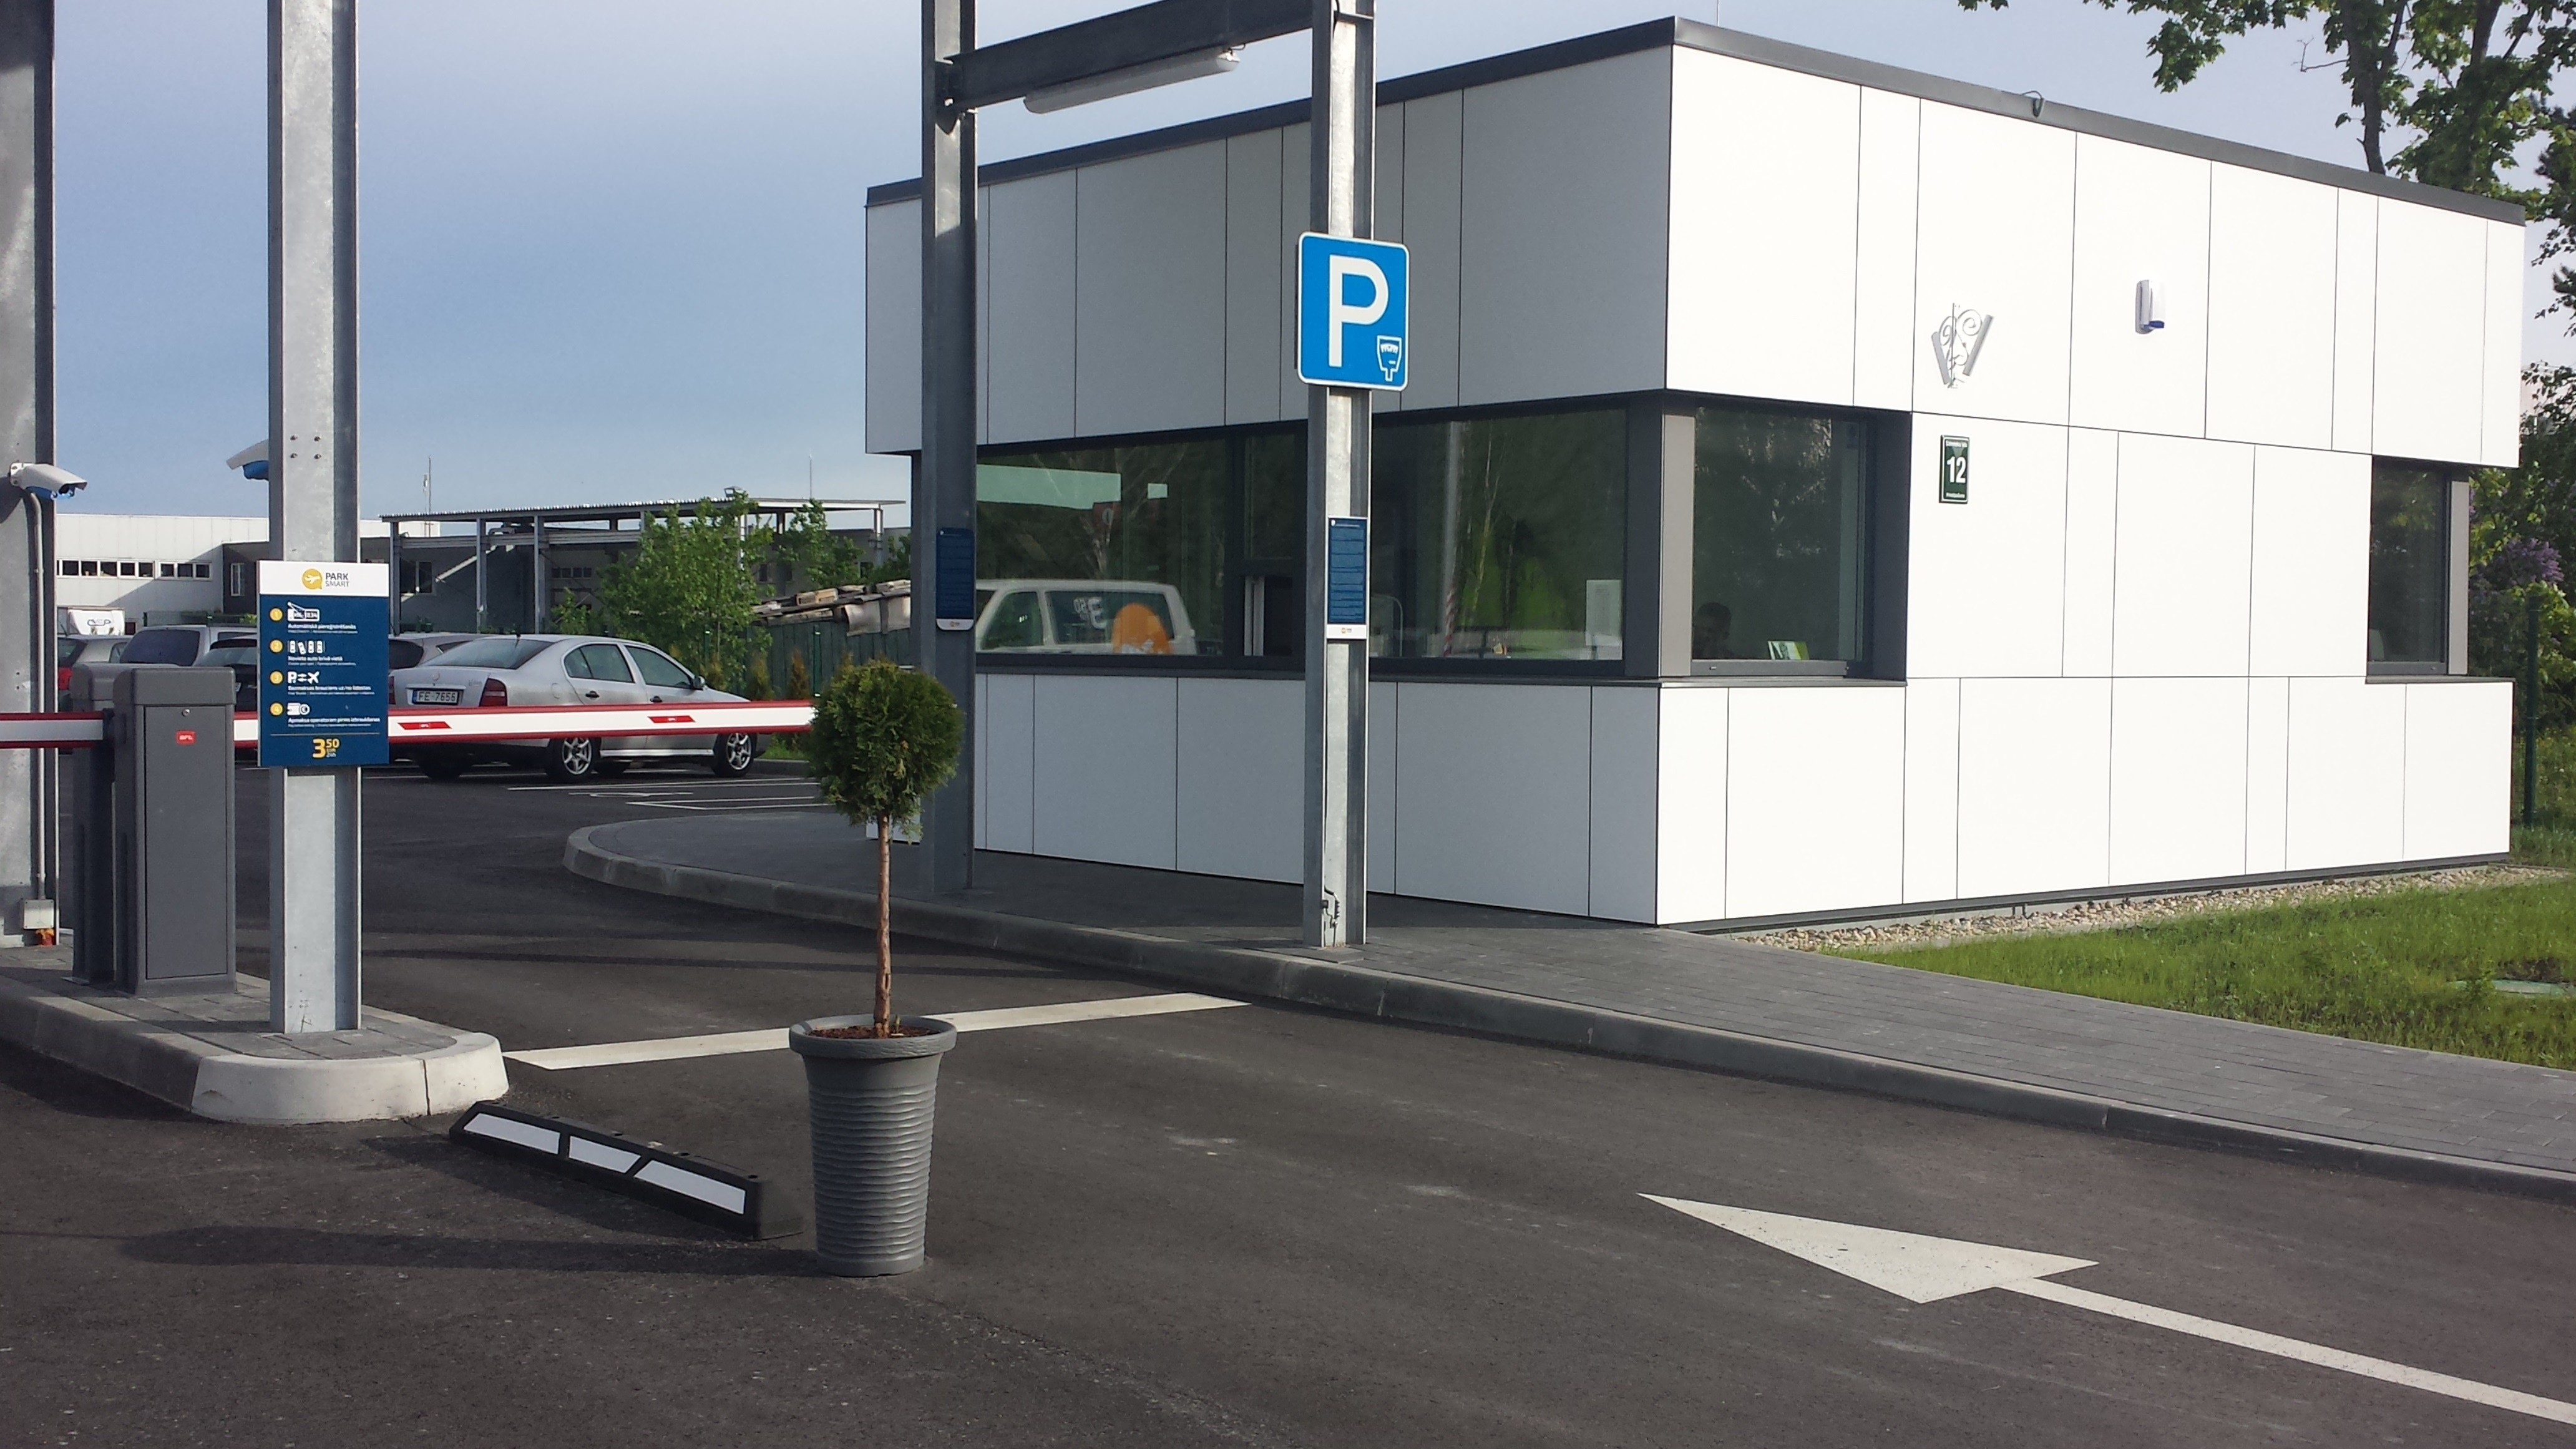 Park Smart Riga parking entrance